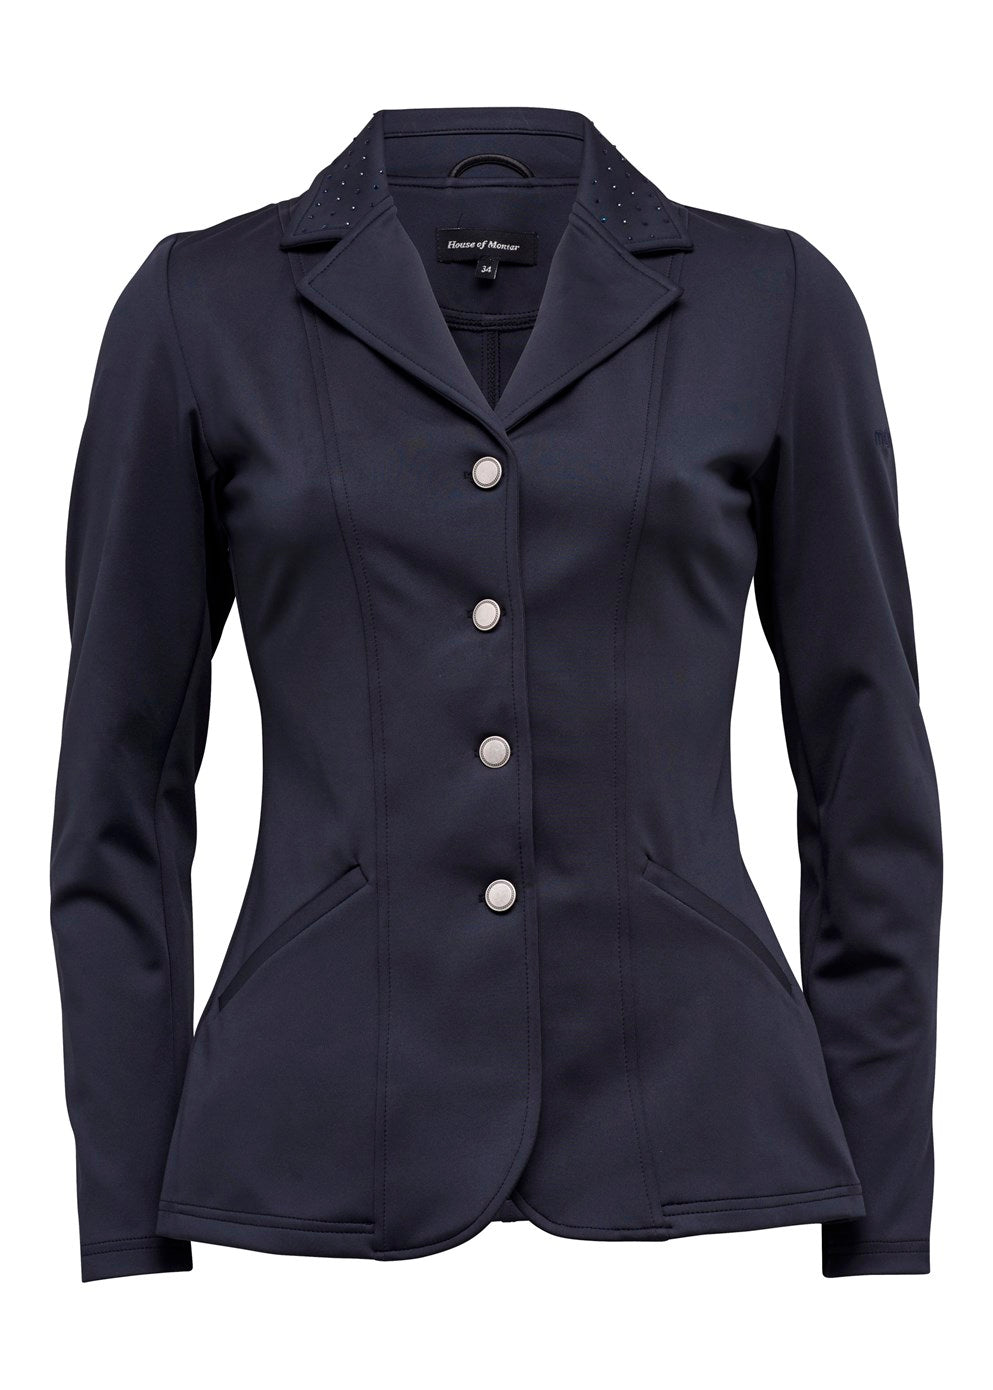 Montar Competition Jacket - The Dressage Store